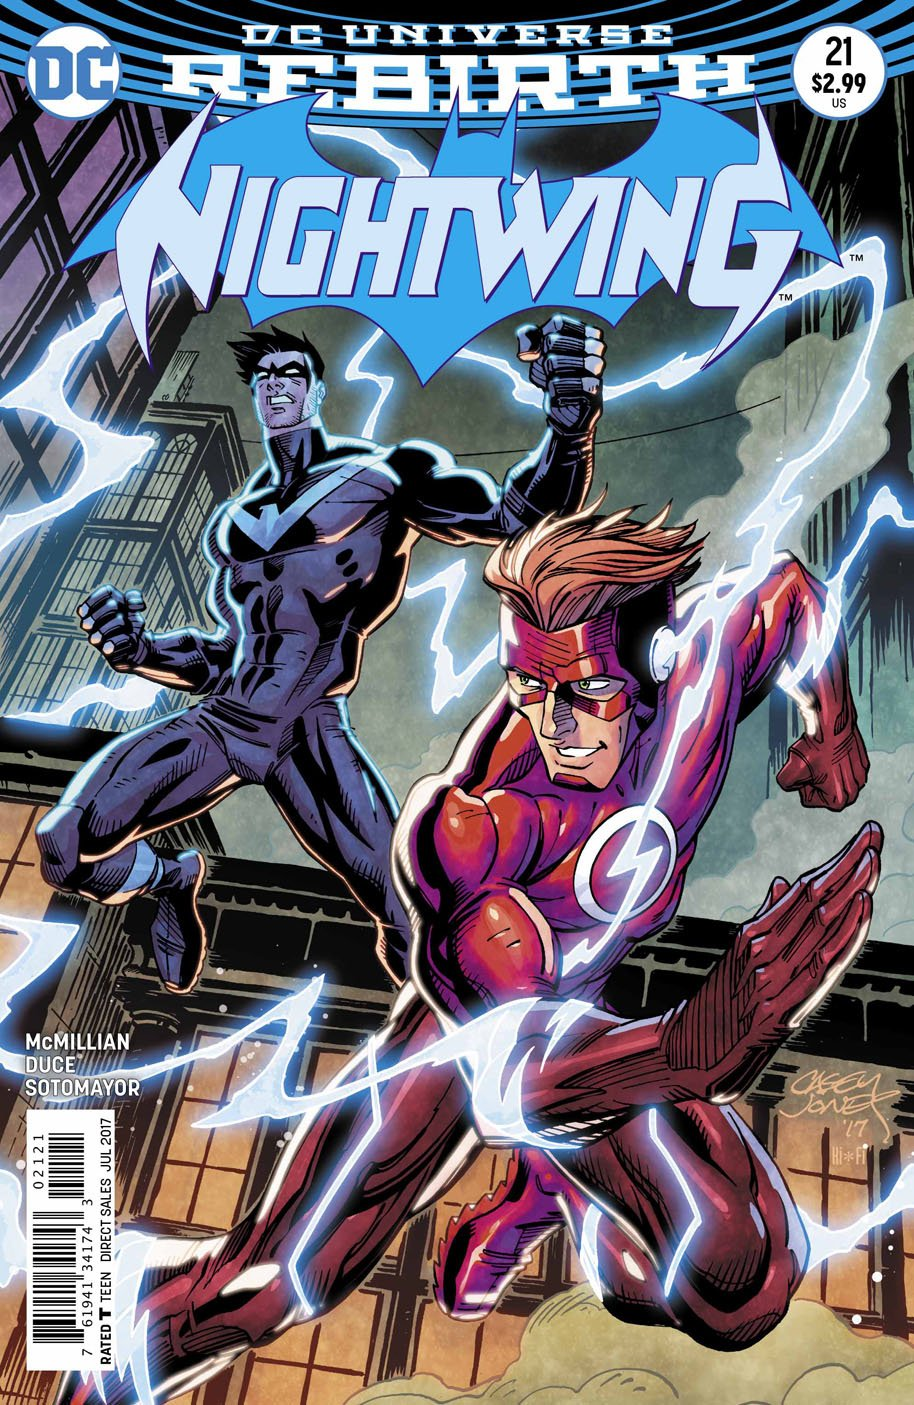 Nightwing #21 Review